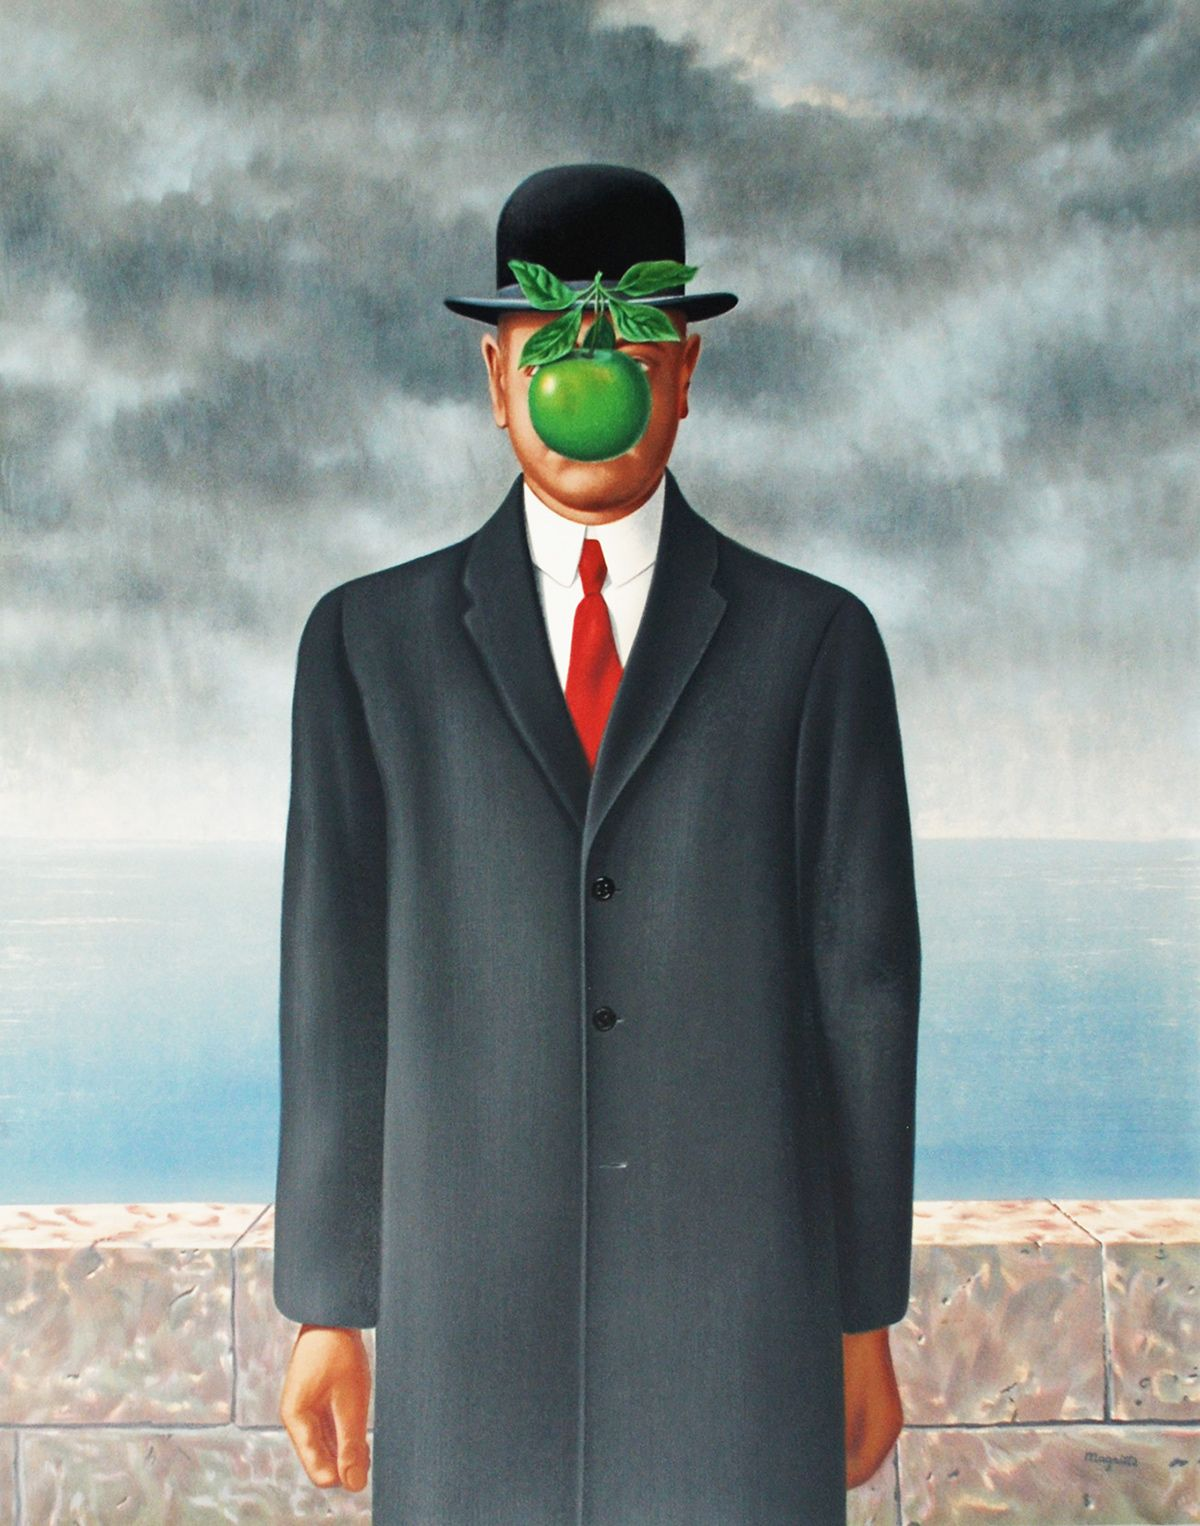 Rene Magritte The Son Of Man Rene Magritte - 'The S...